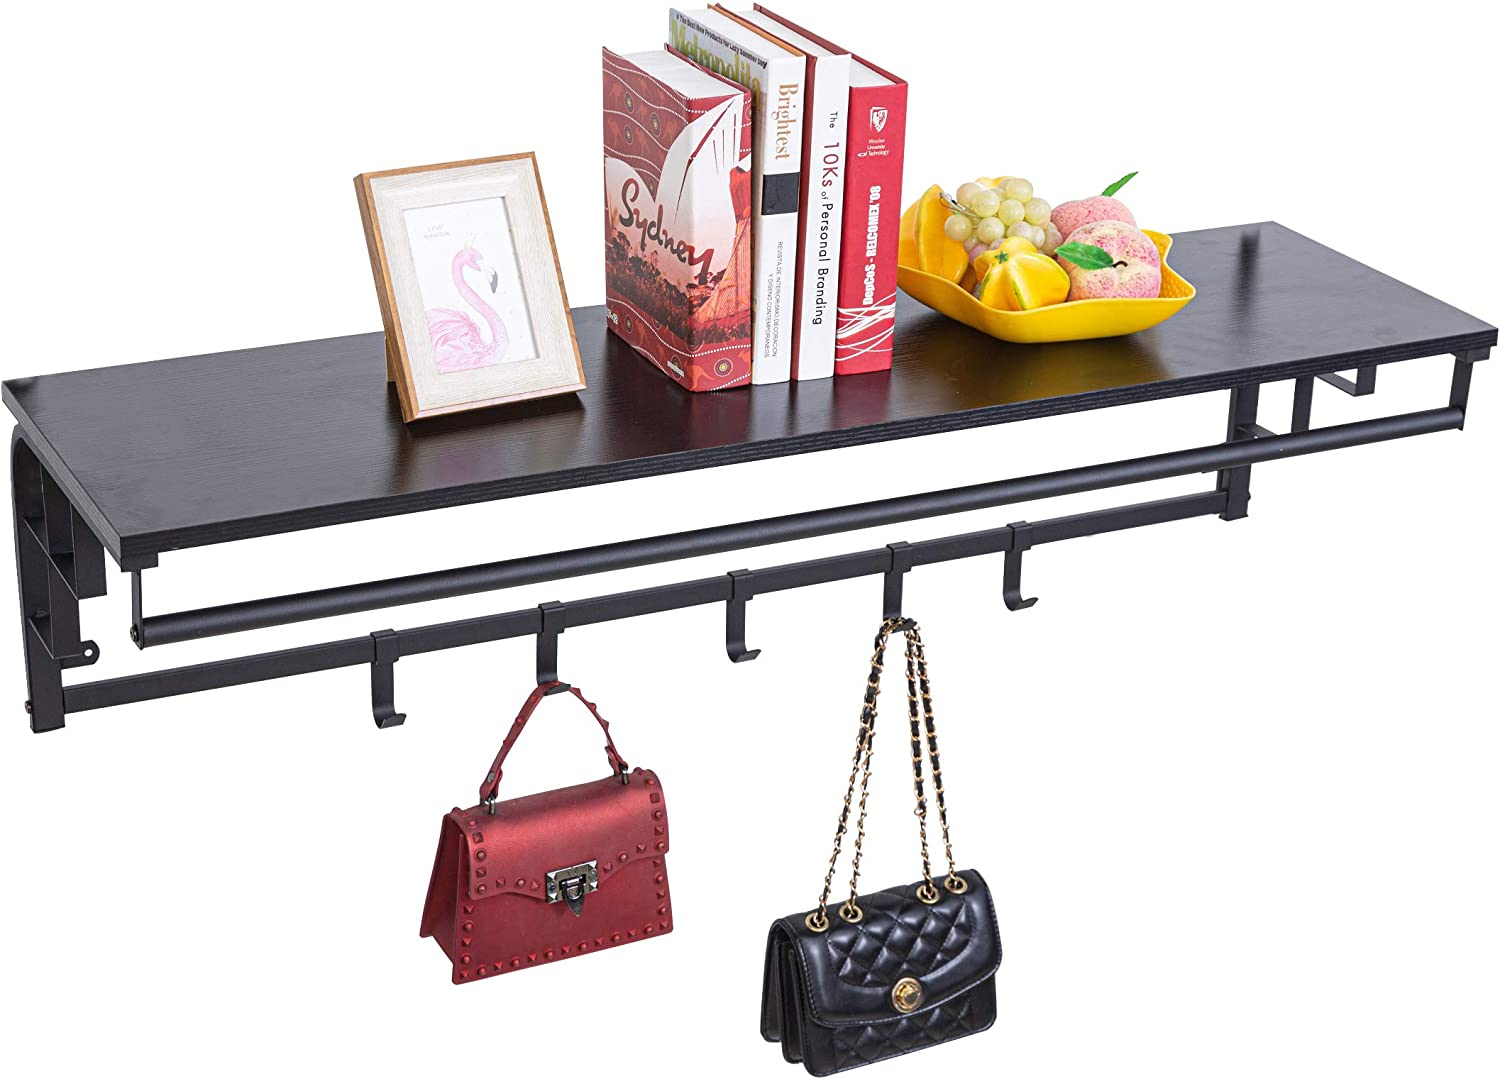 Sihang Home Heavy Duty Coat Rack Wall Mount with Shelf, Wall Hooks Rack with Hanging Rails, Storage Shelf, 5 Removable Hooks for Enterway Bedroom Living Room Boutique